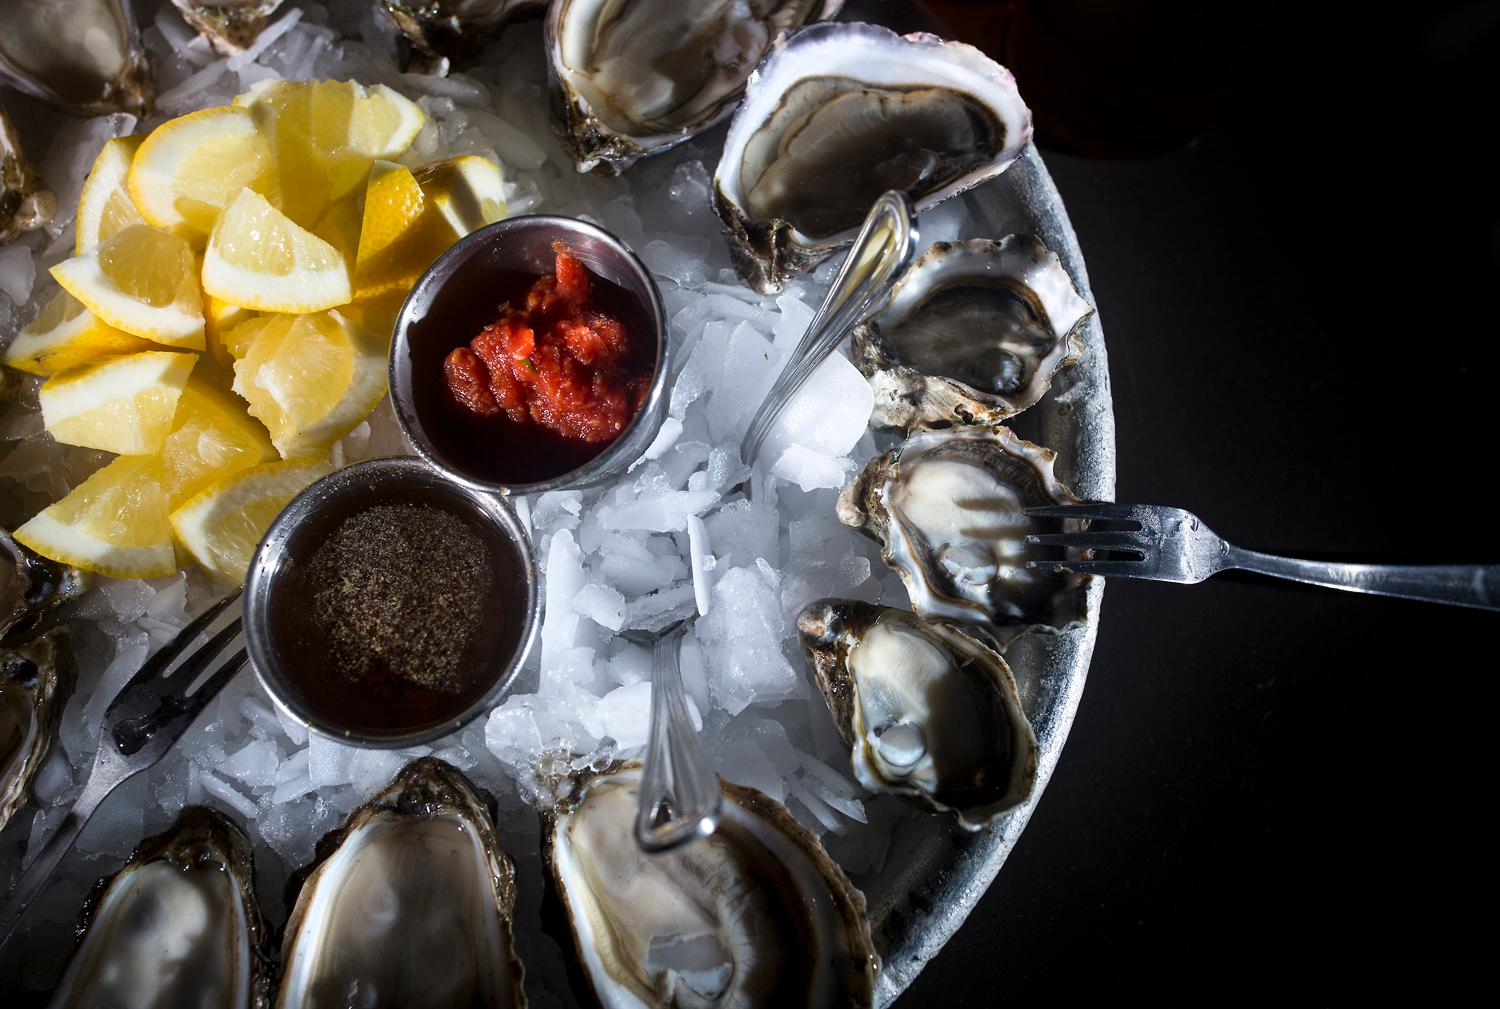 The Kumamoto oysters (right) freshly shucked at Taylor Shellfish's retail shop overlooking Samish Bay, located at 2182 Chuckanut Dr, in Bow, Washington. You can try the tasty oysters at one of their oyster bars located in Queen Anne, Capitol Hill, Pioneer Square, or Bellevue. (Sy Bean / Seattle Refined)